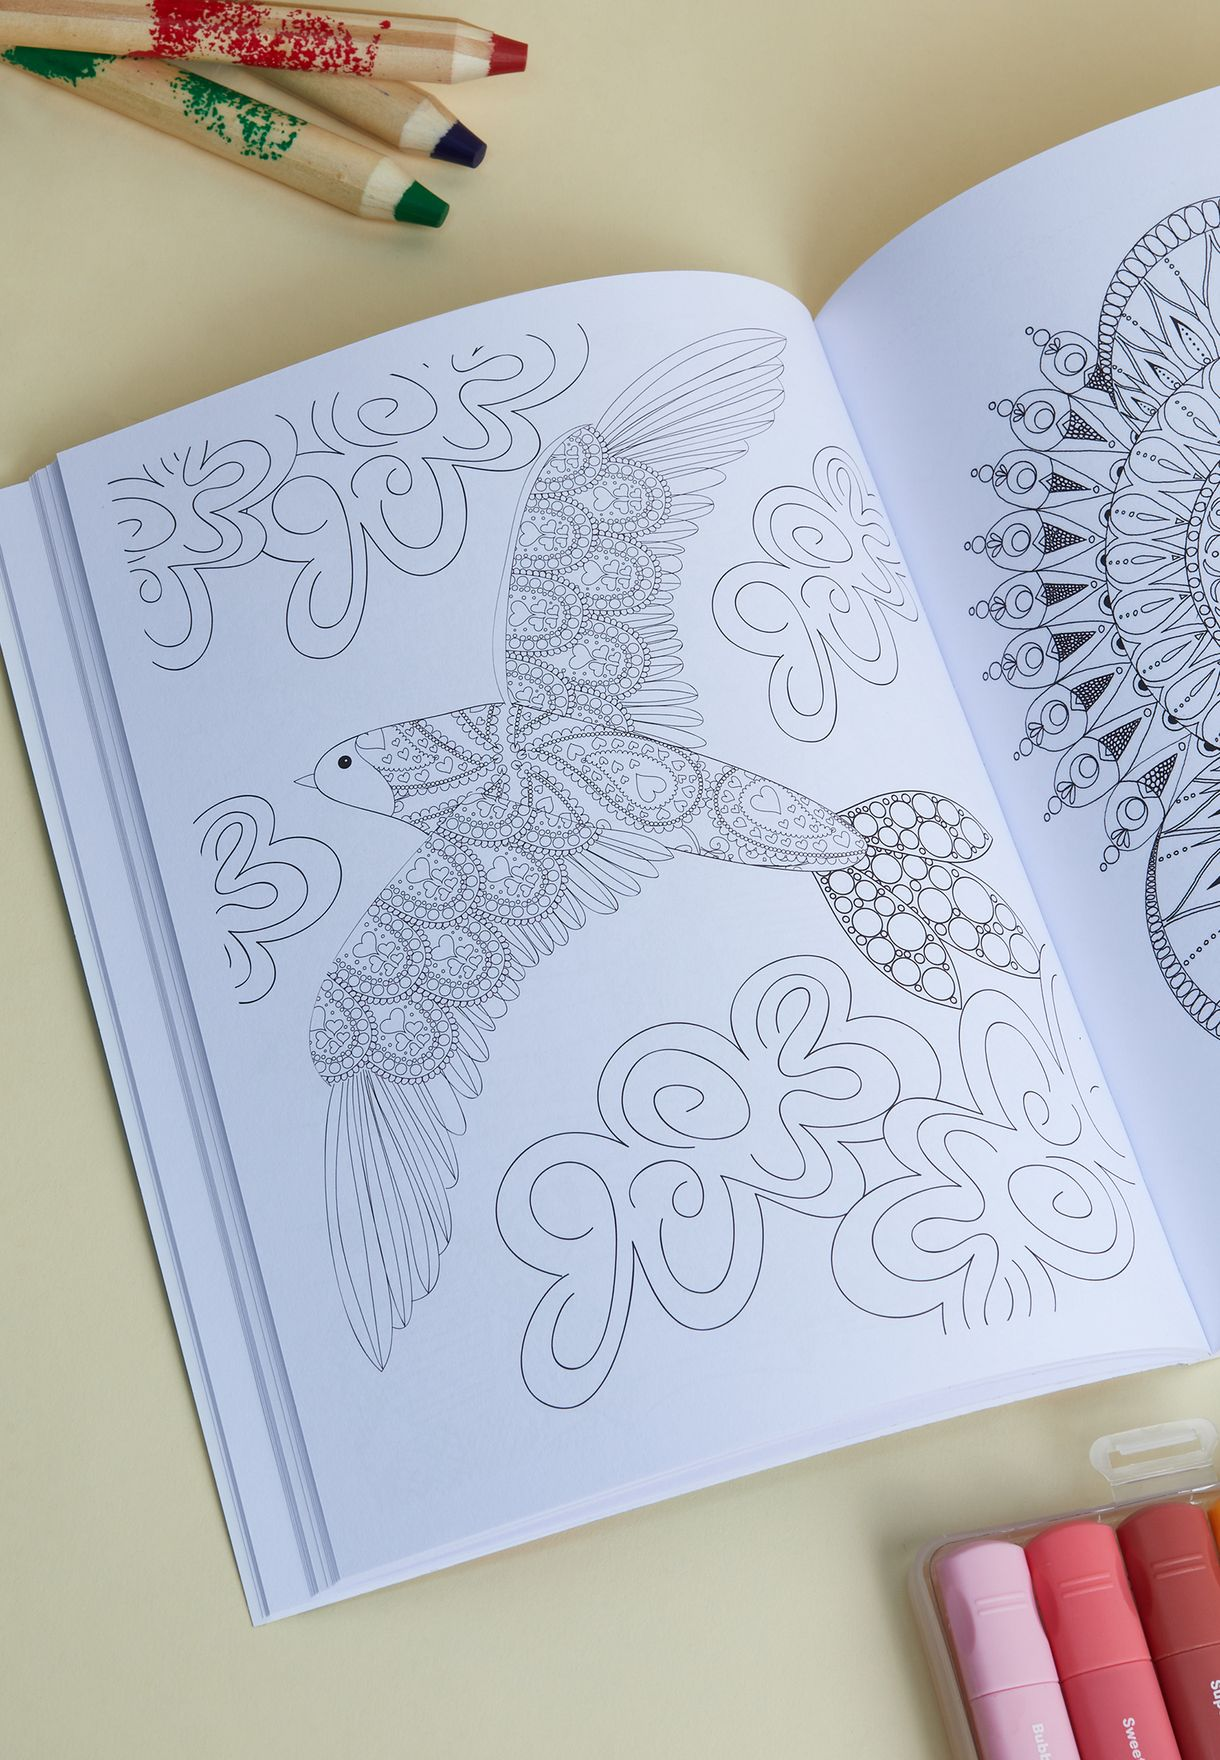 Mindfulness: Serene And Tranquil Colouring